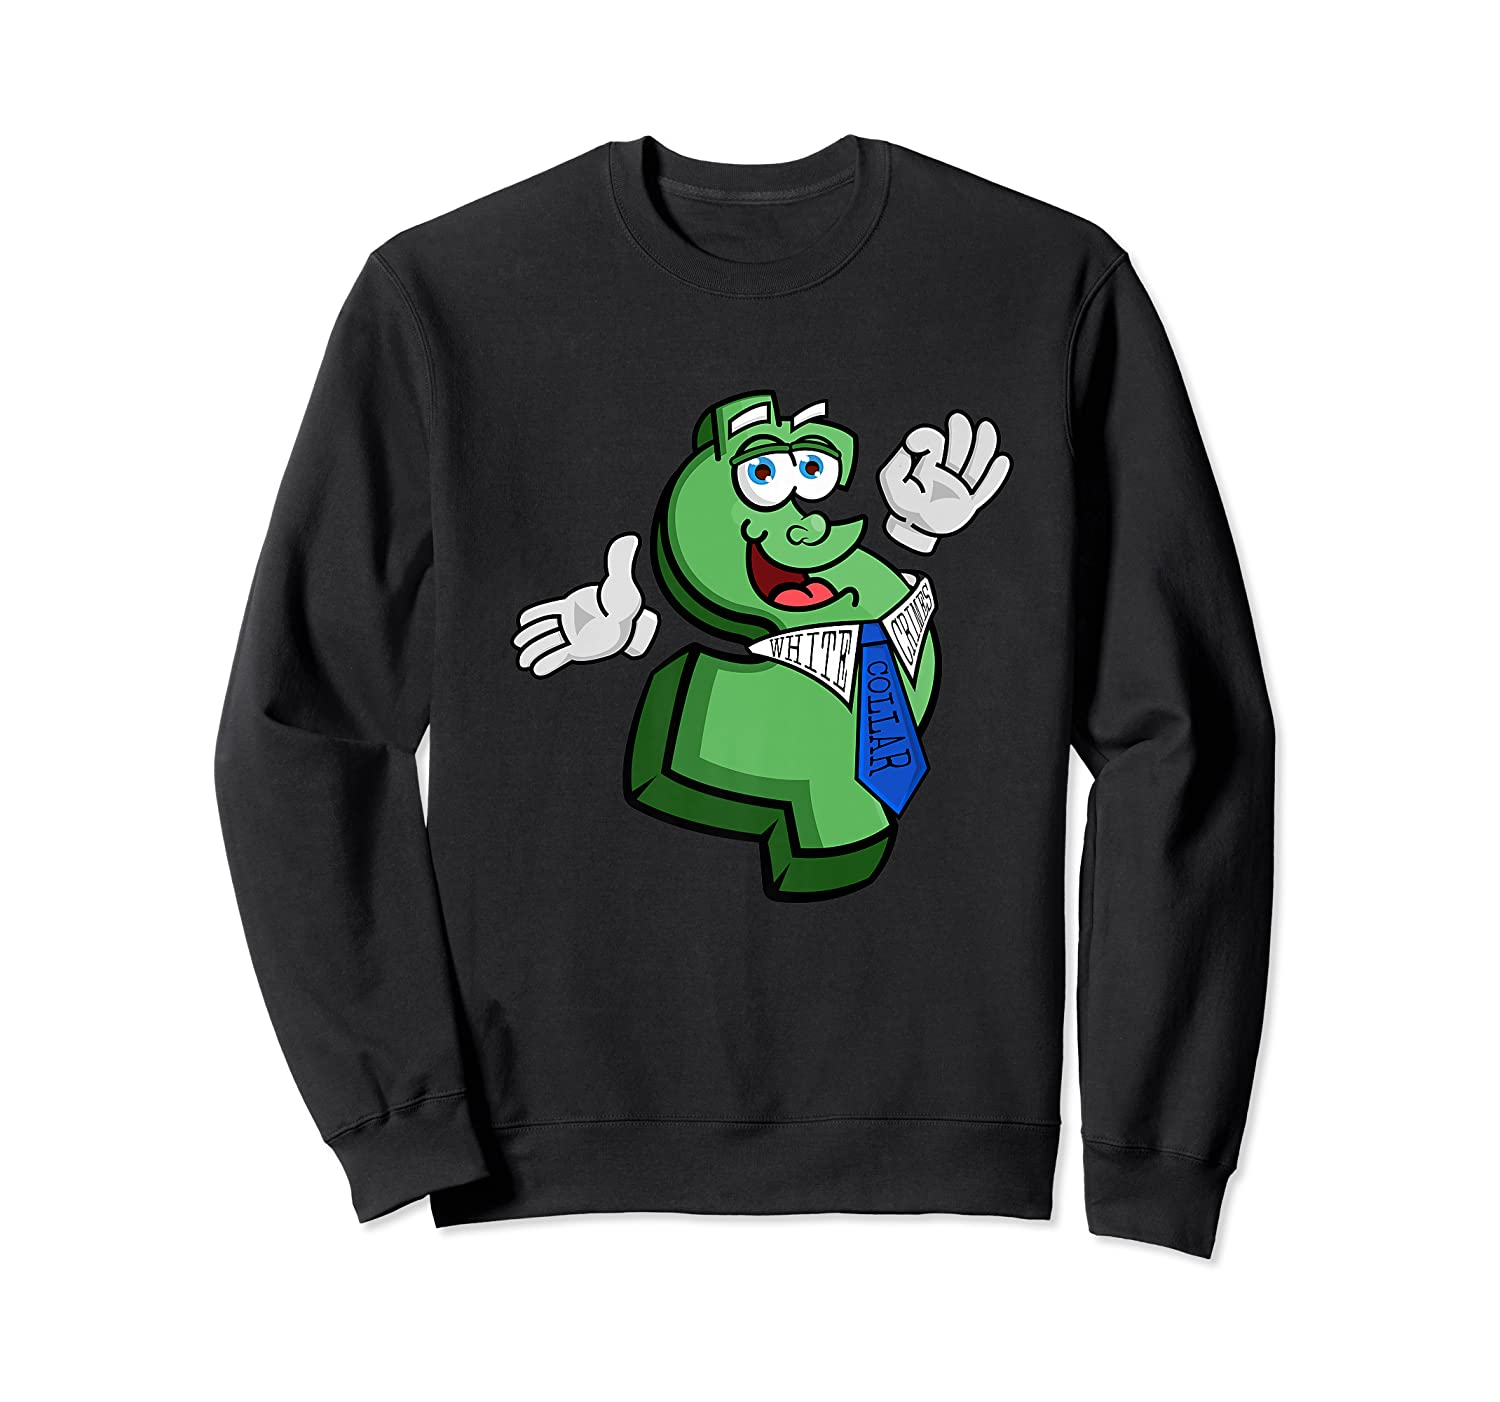 Funny T Shirts For Funny T Shirts For  Crewneck Sweater